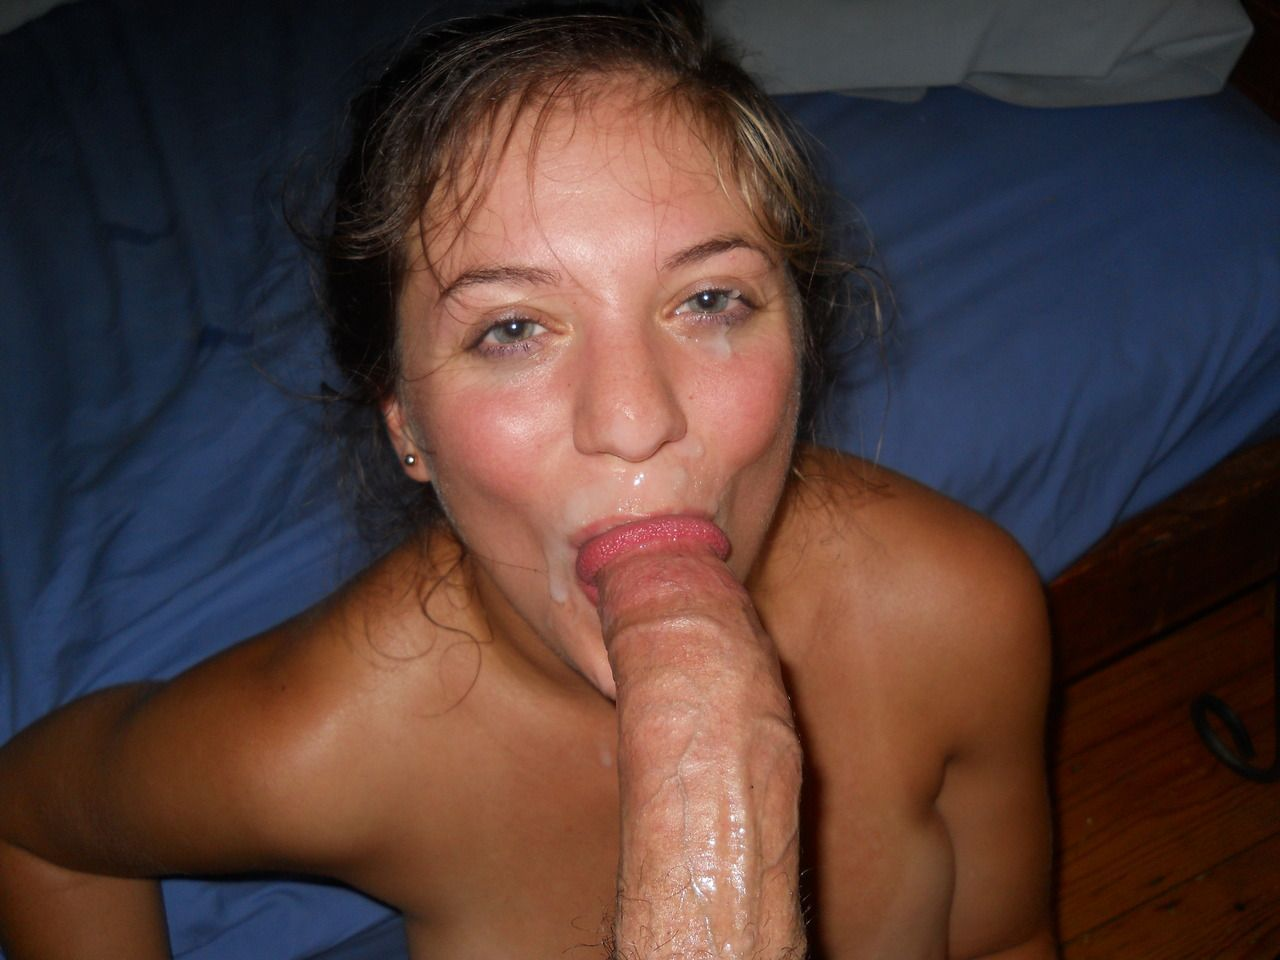 agree opinion mature woman lick dick outdoor will not prompt